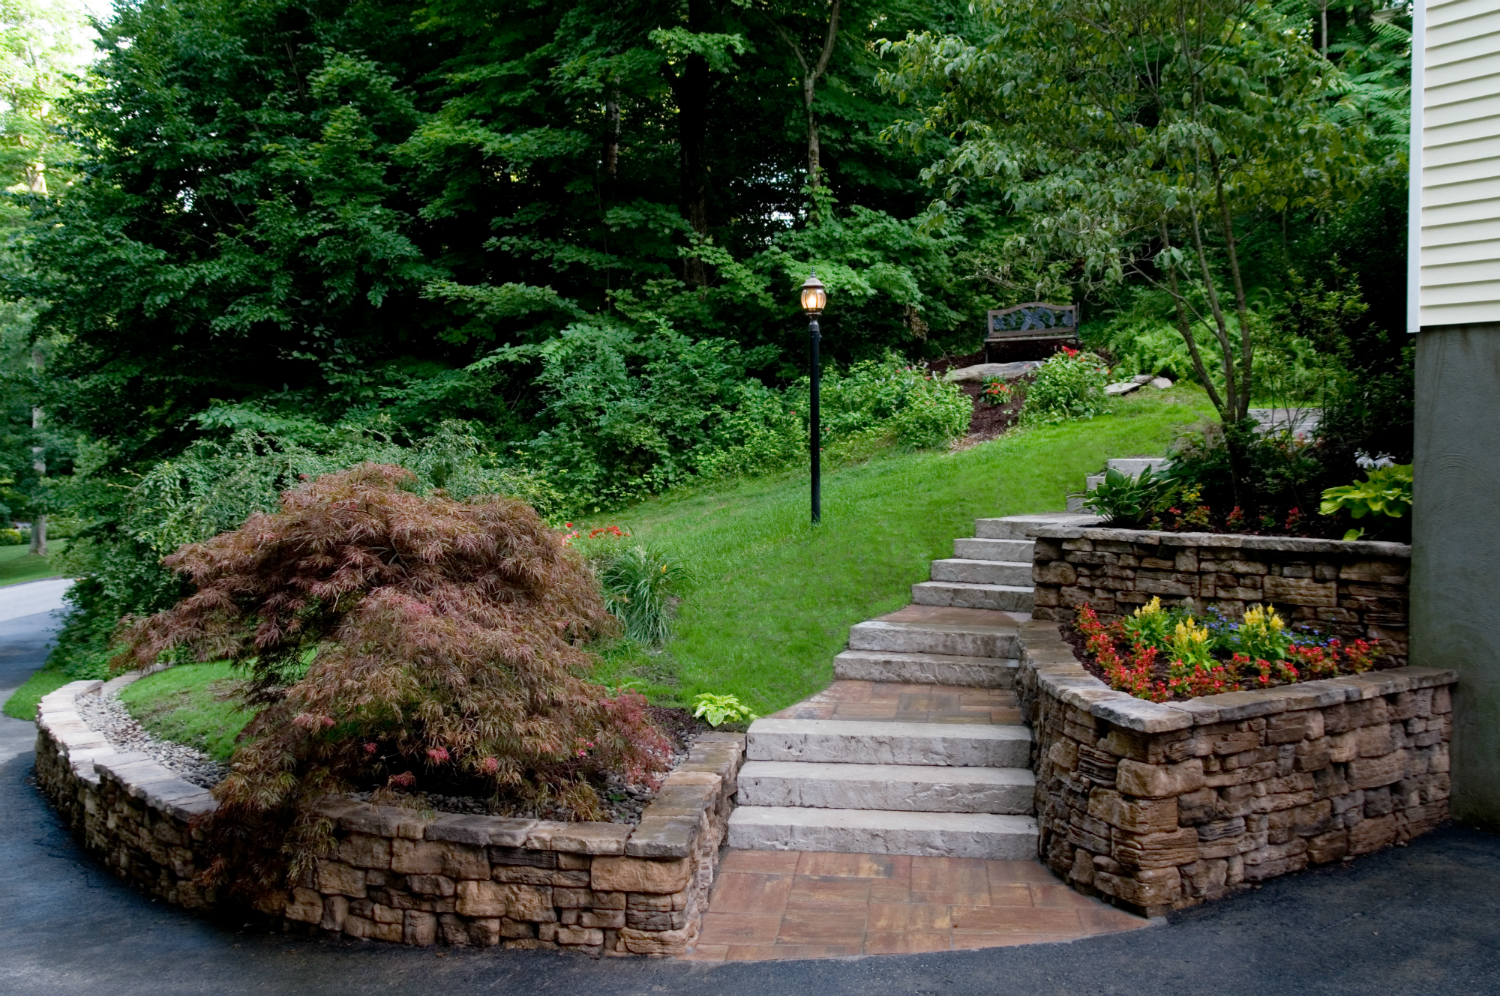 Types Of Tree Service To Help Your Ny Landscape Look Its Best